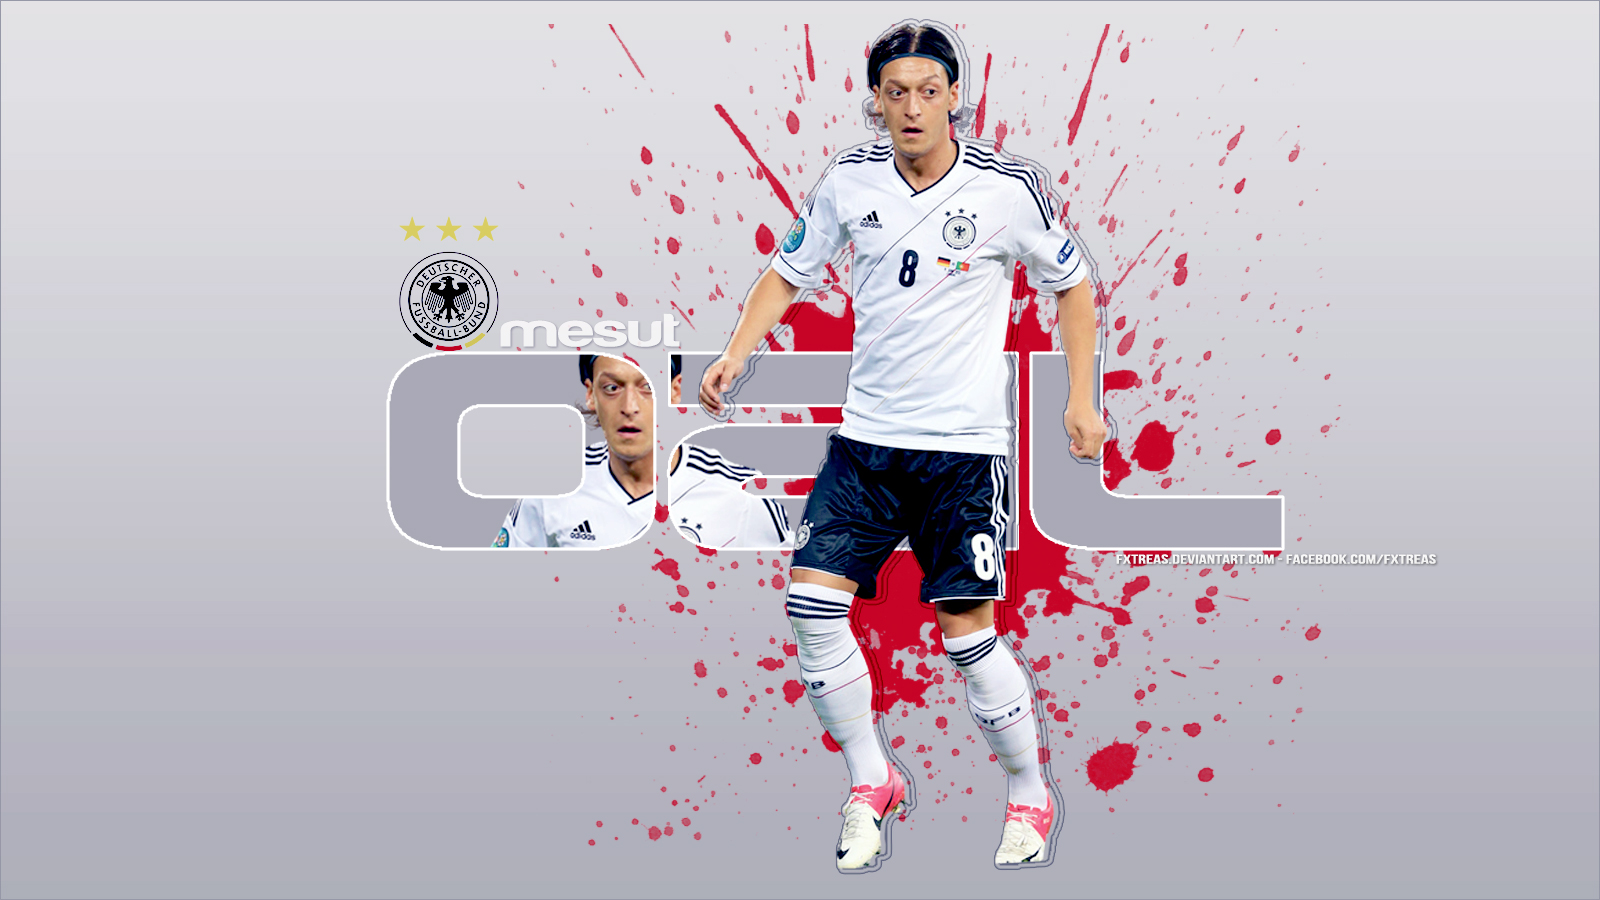 All Wallpapers: Mesut Ozil HQ & Hd New Wallpapers 2013